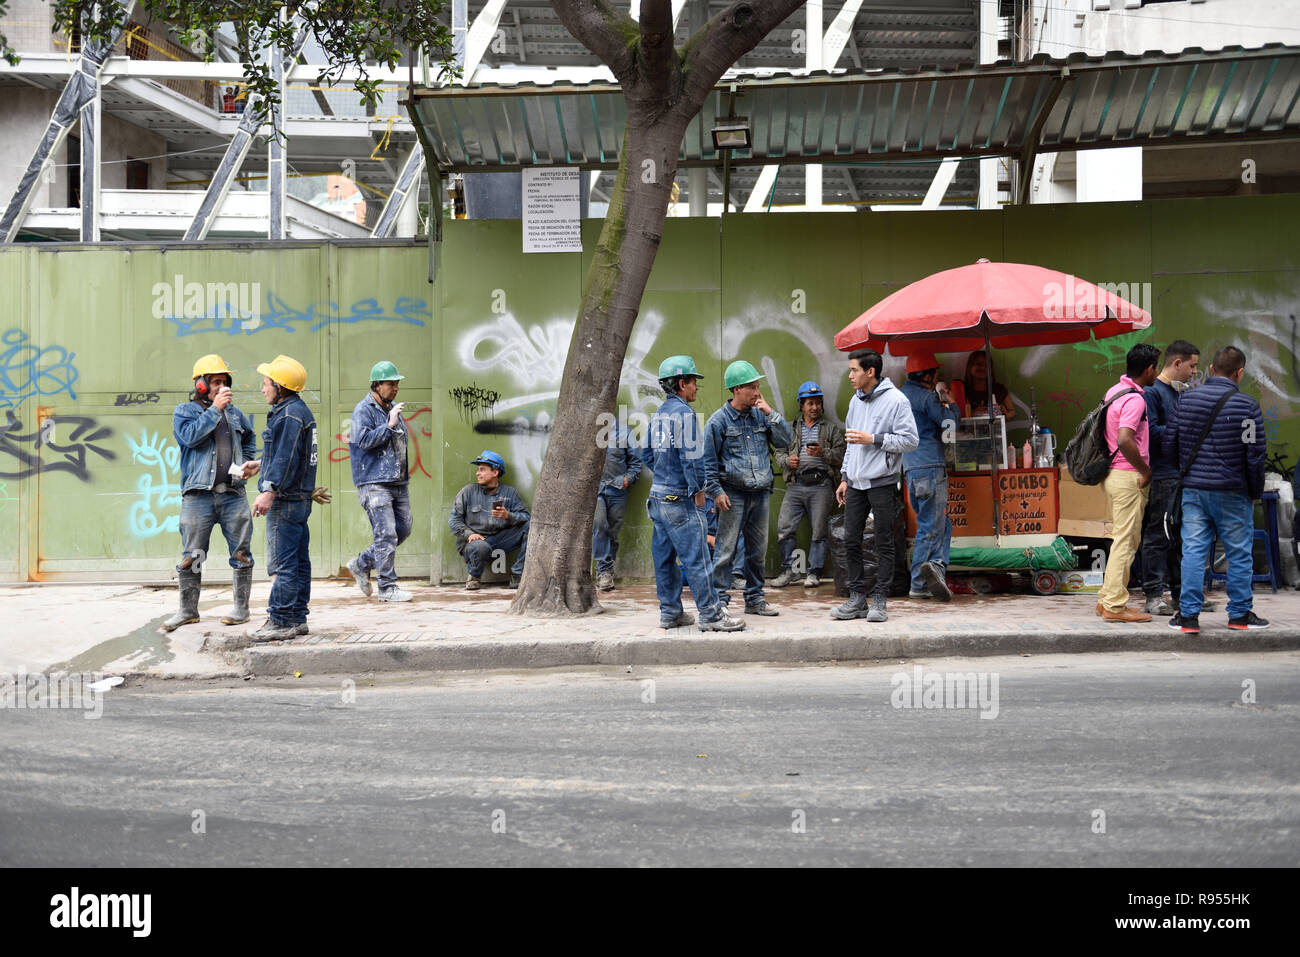 South American construction workers taking a coffee break at a building construction work site in downtown Bogota. - Stock Image